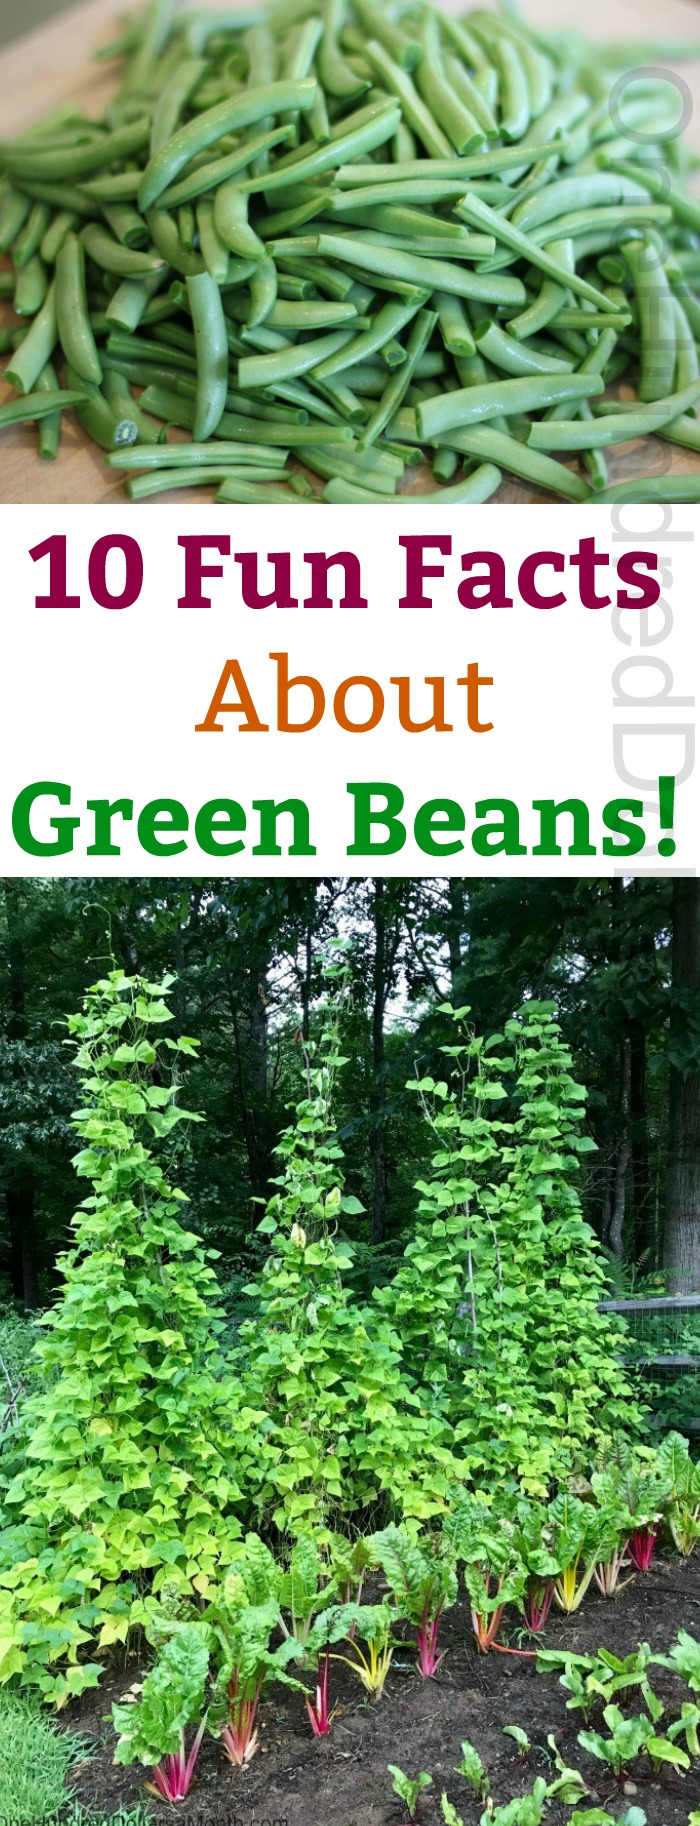 10 Fun Facts About Green Beans!